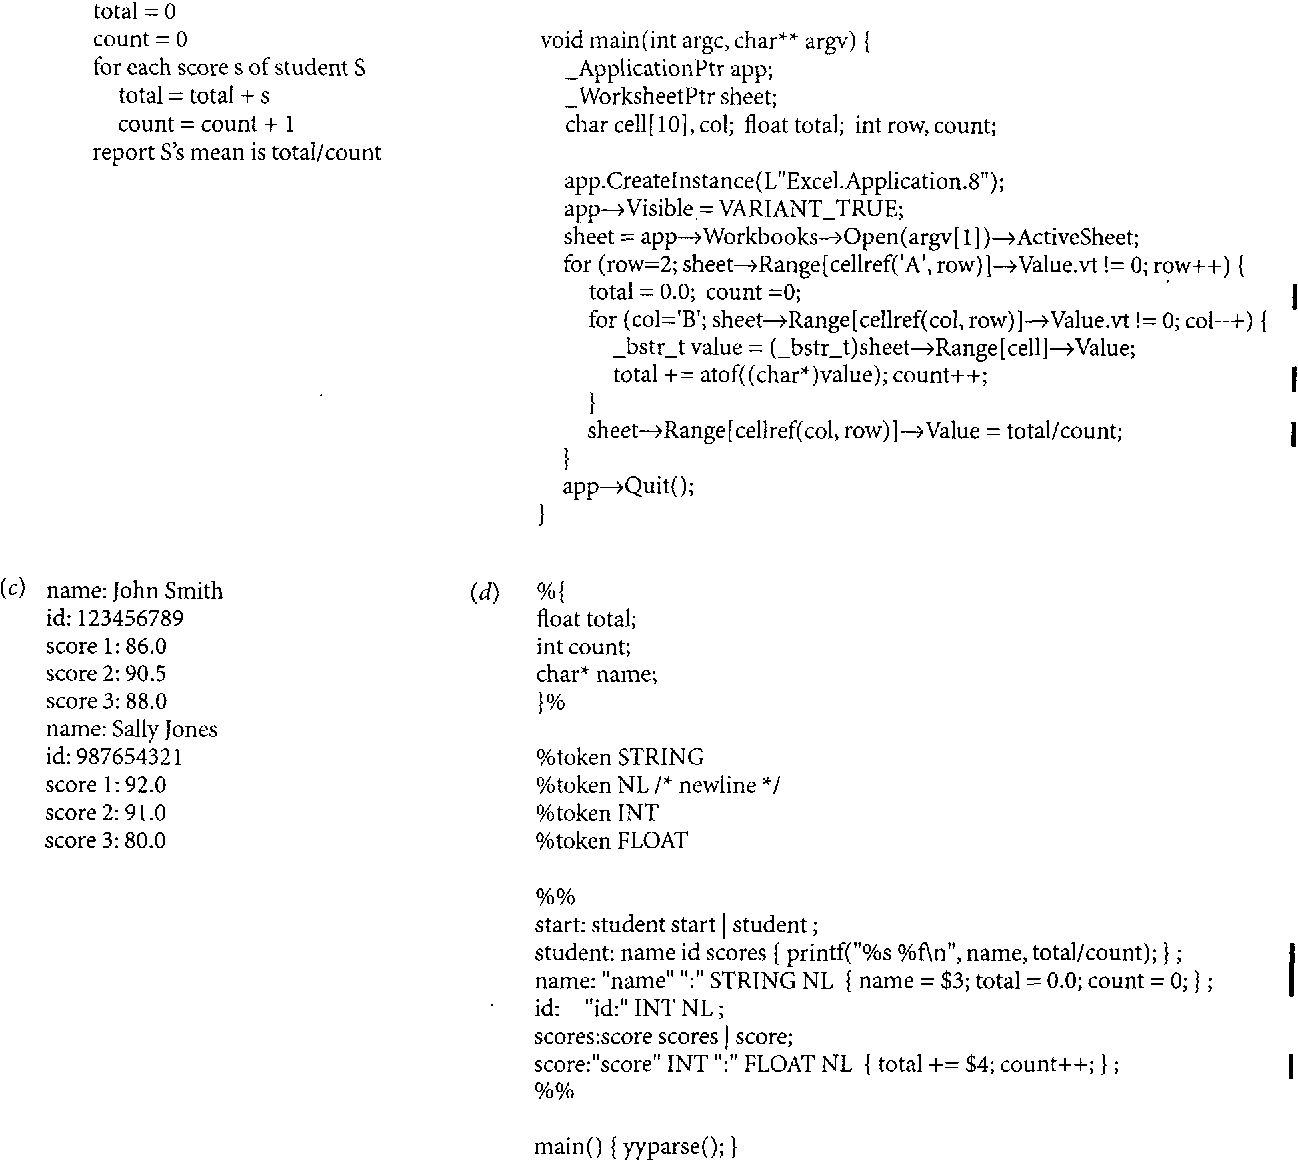 Figure 1. The source code for a component that computes the means of students'scores, when implemented (a) in pseudocode, (b) as a spreadsheet update, and (d) as a jilter that processes records formatted like those in (c).